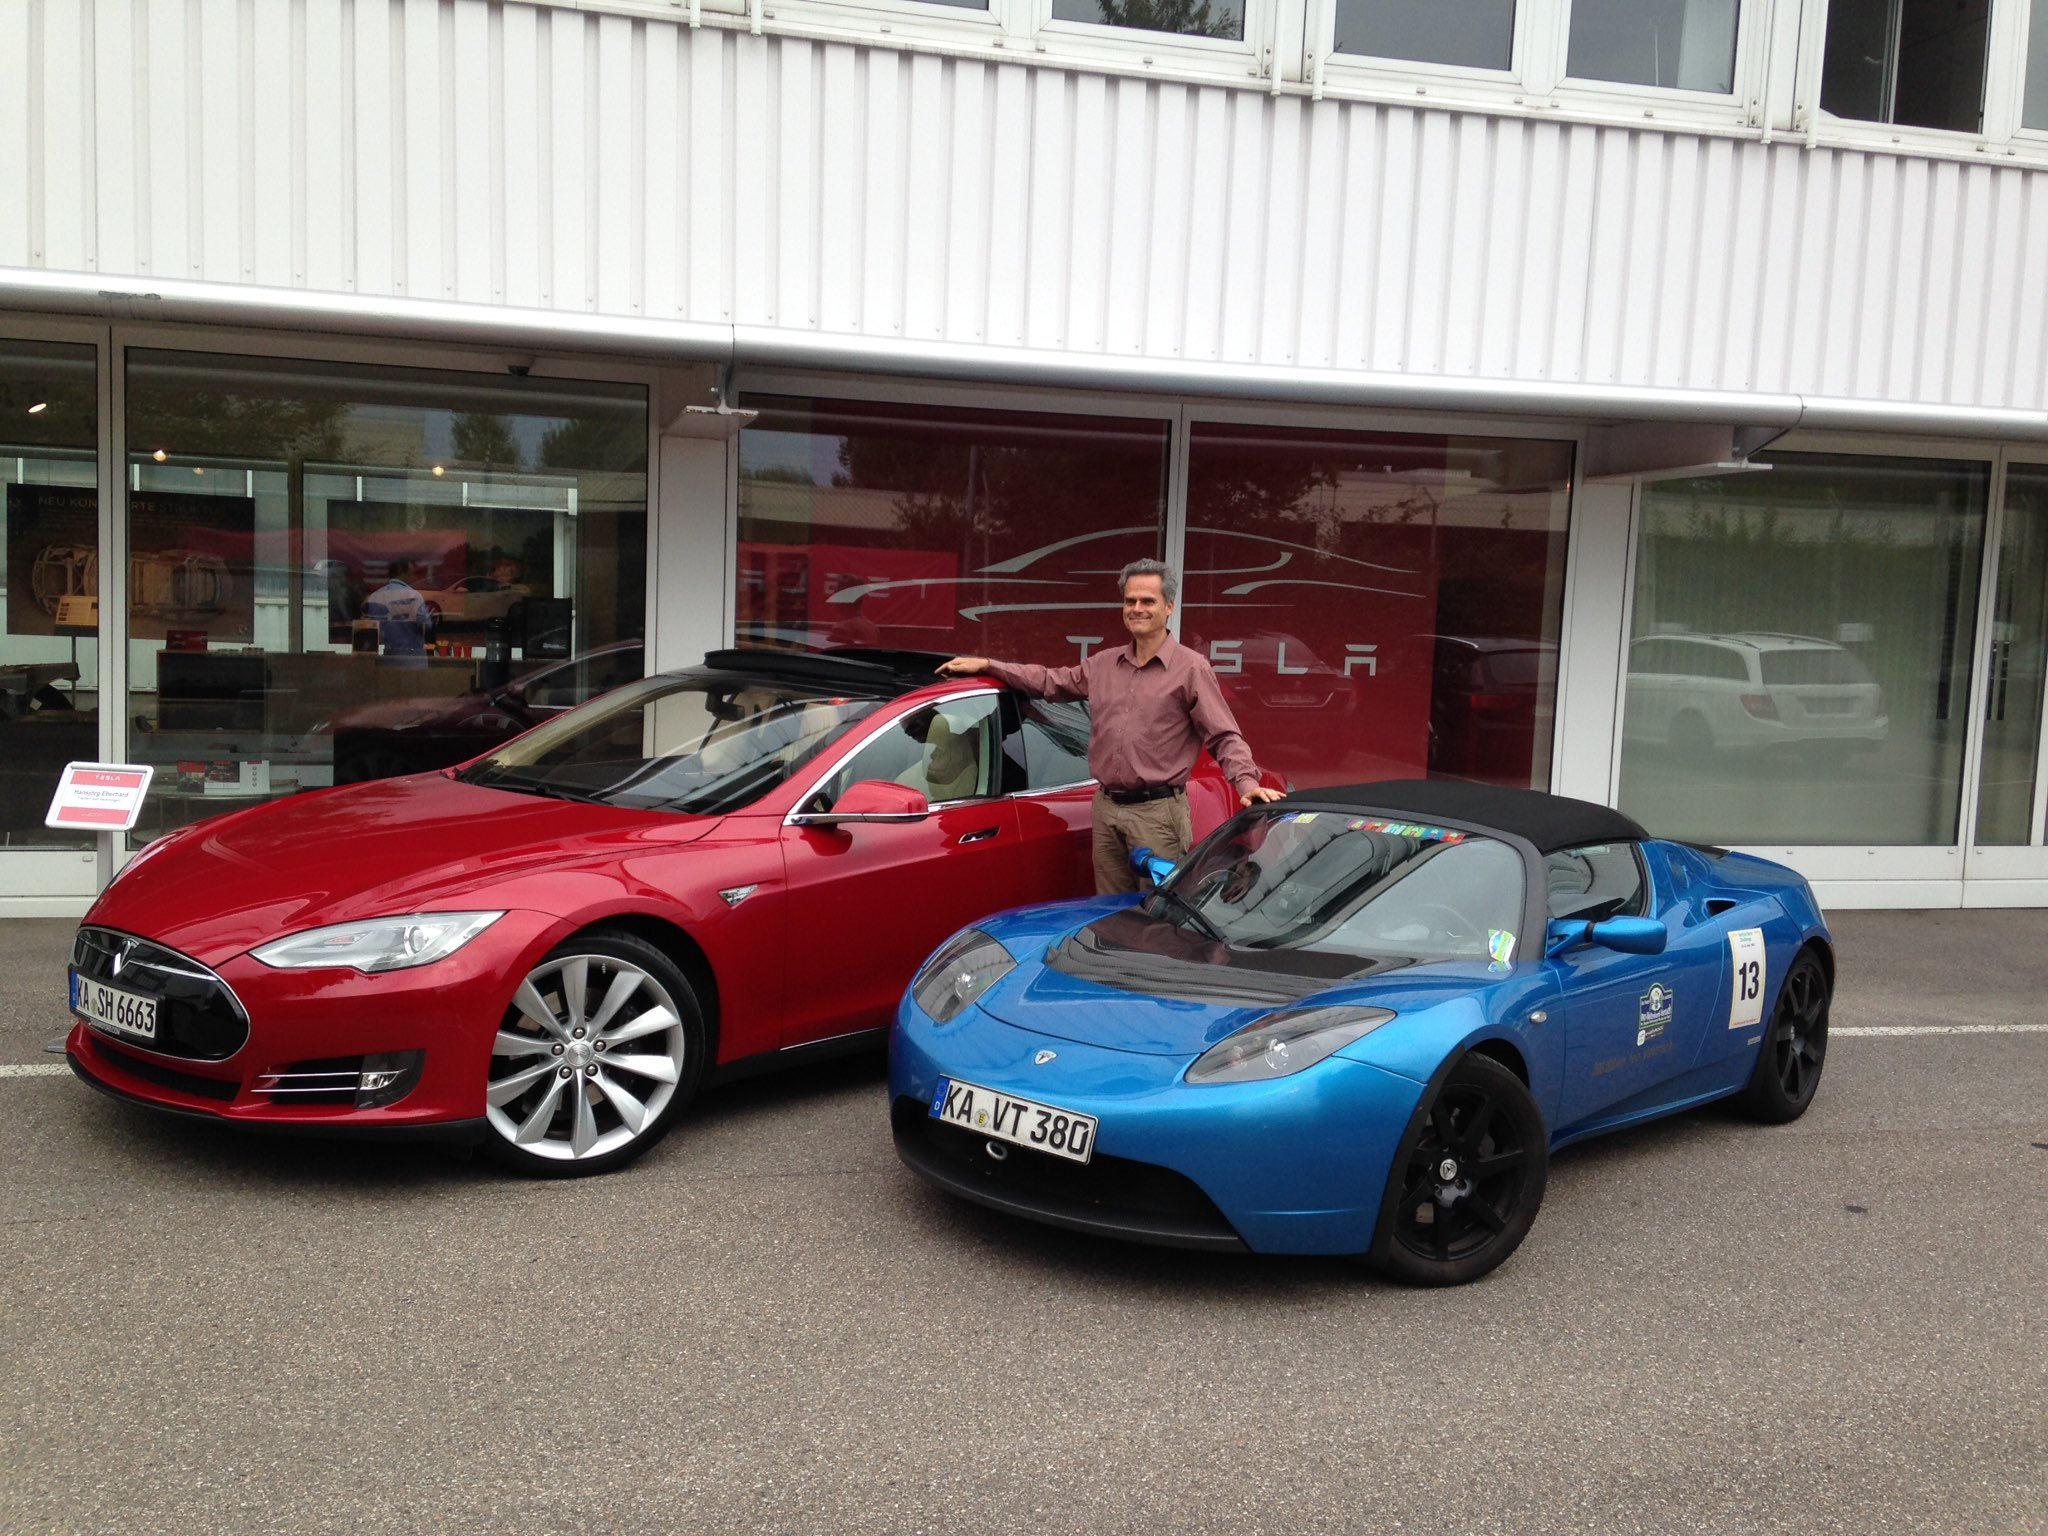 Tesla Model S owner sets new high mileage record - Drive Tesla Canada